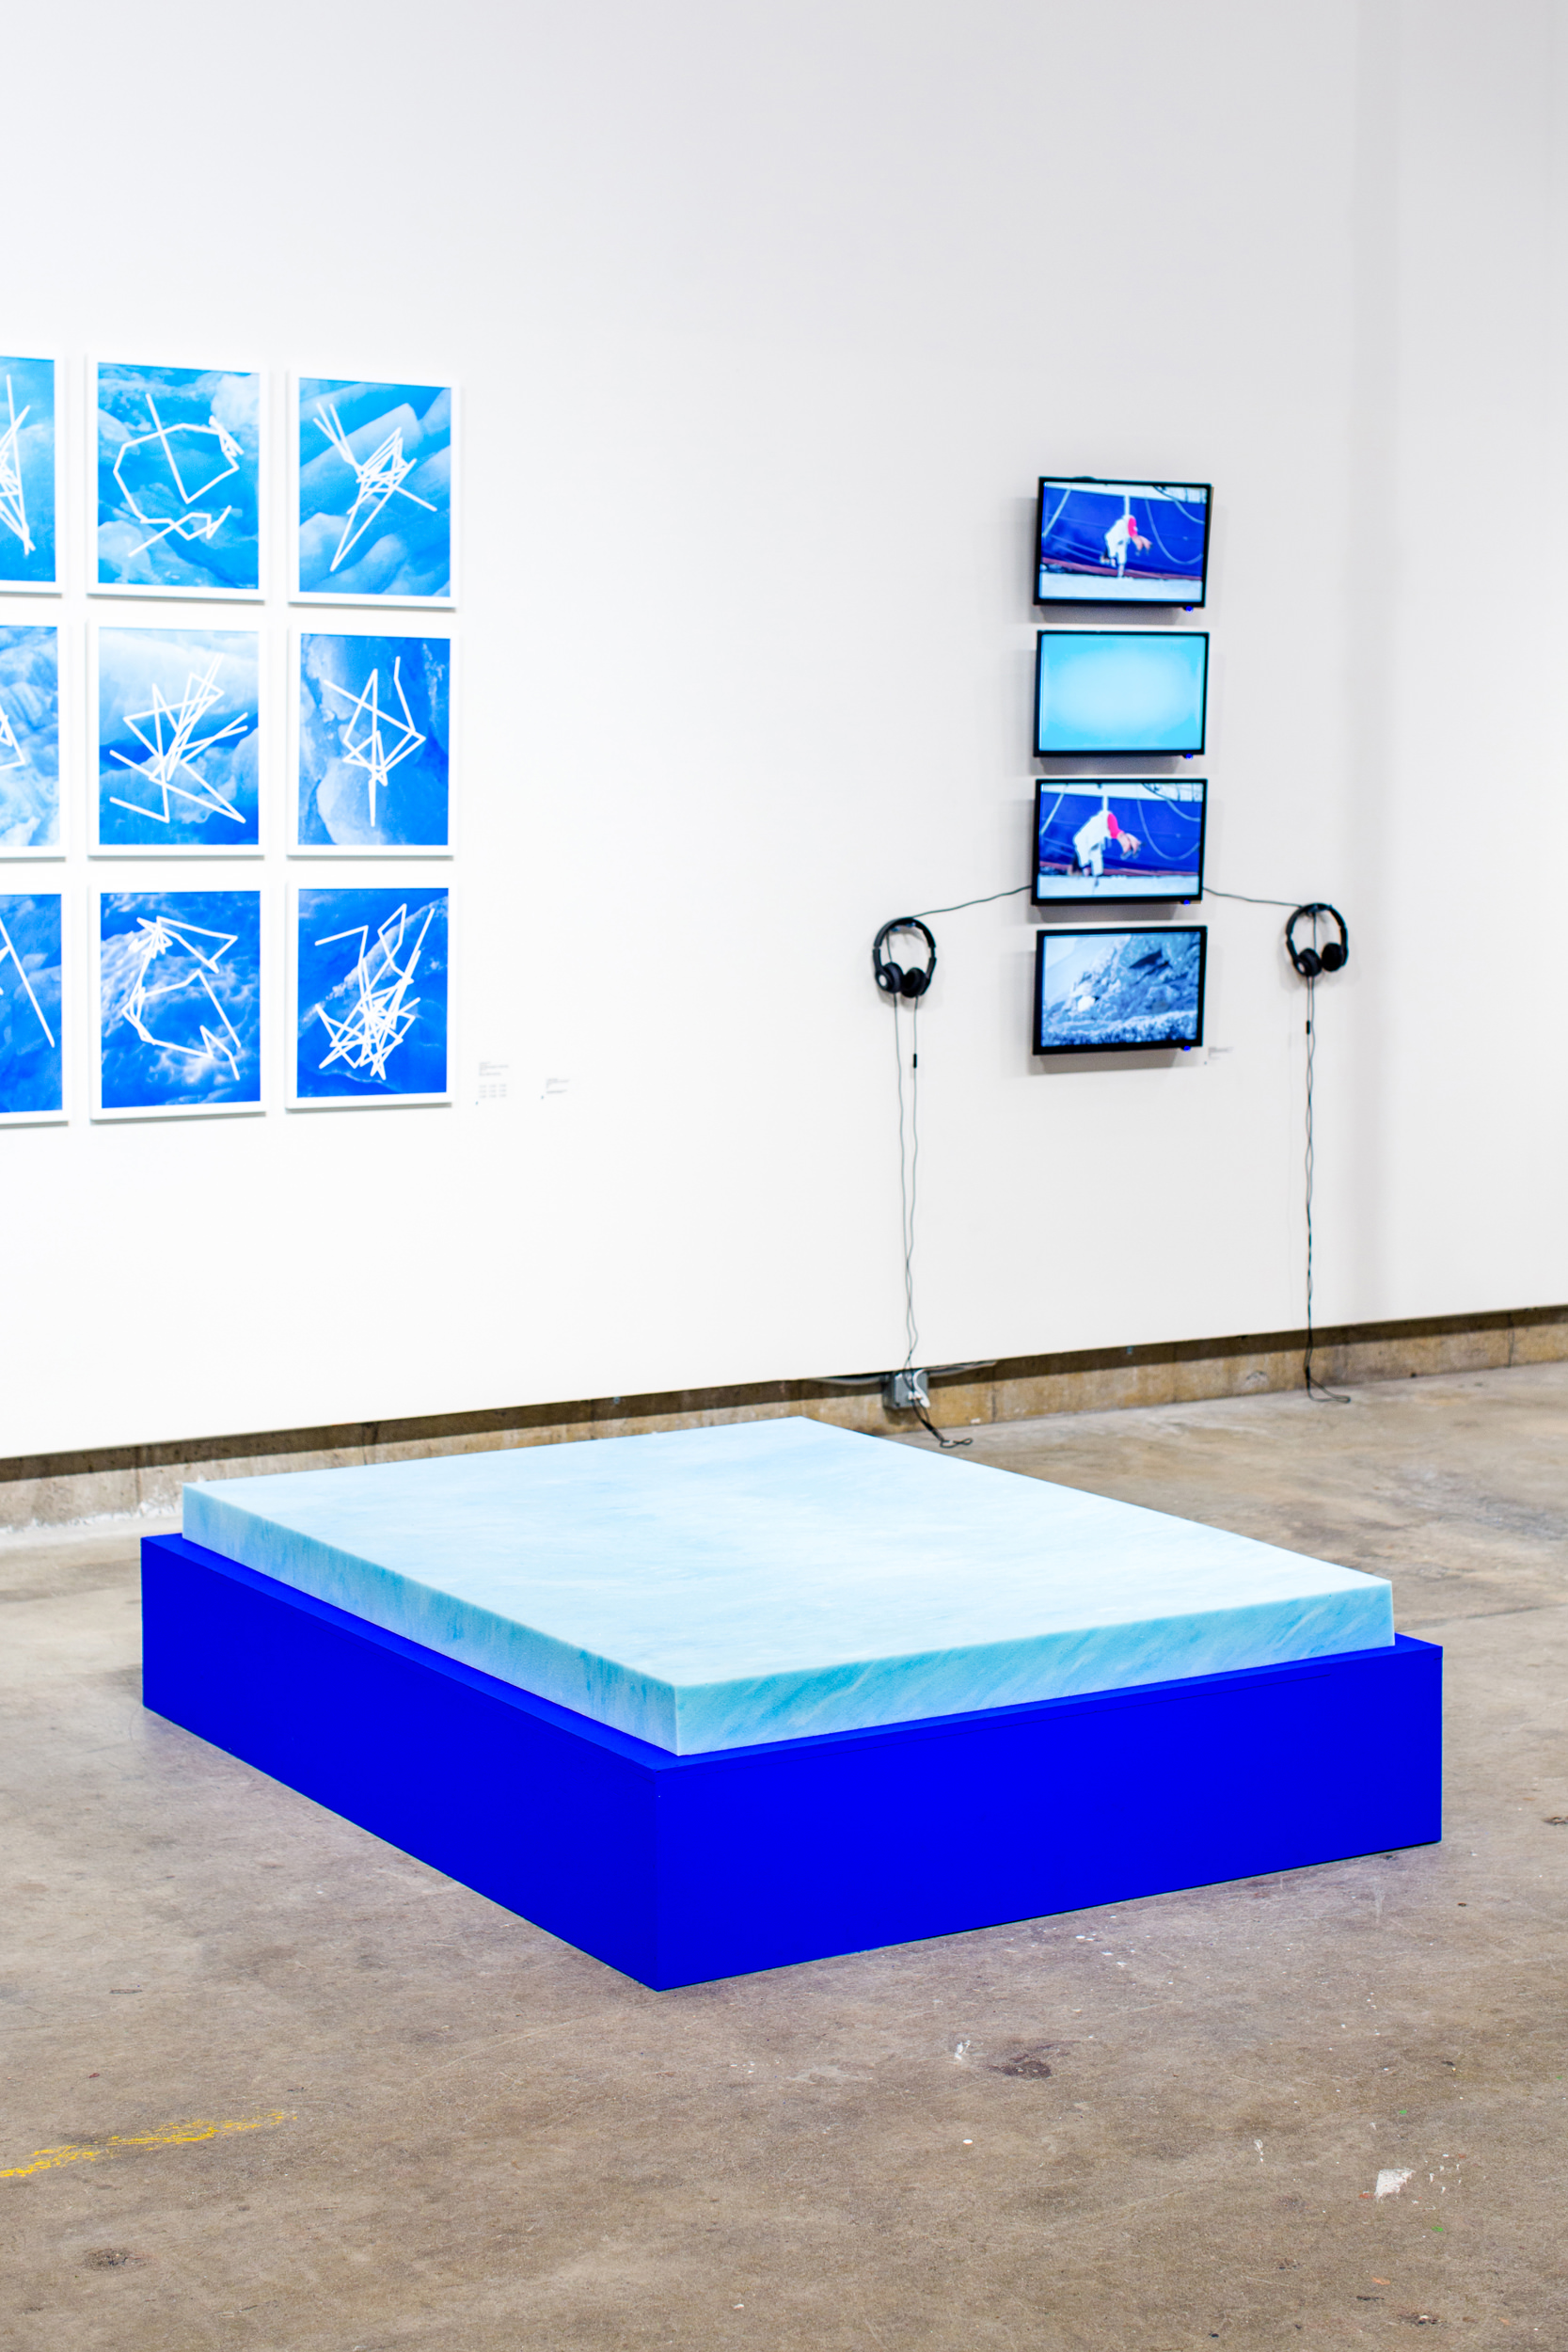 Justin Levesque, A Persistent Body, For Your Convenience, painted wood platform, memory foam, 78x57x16, 2018